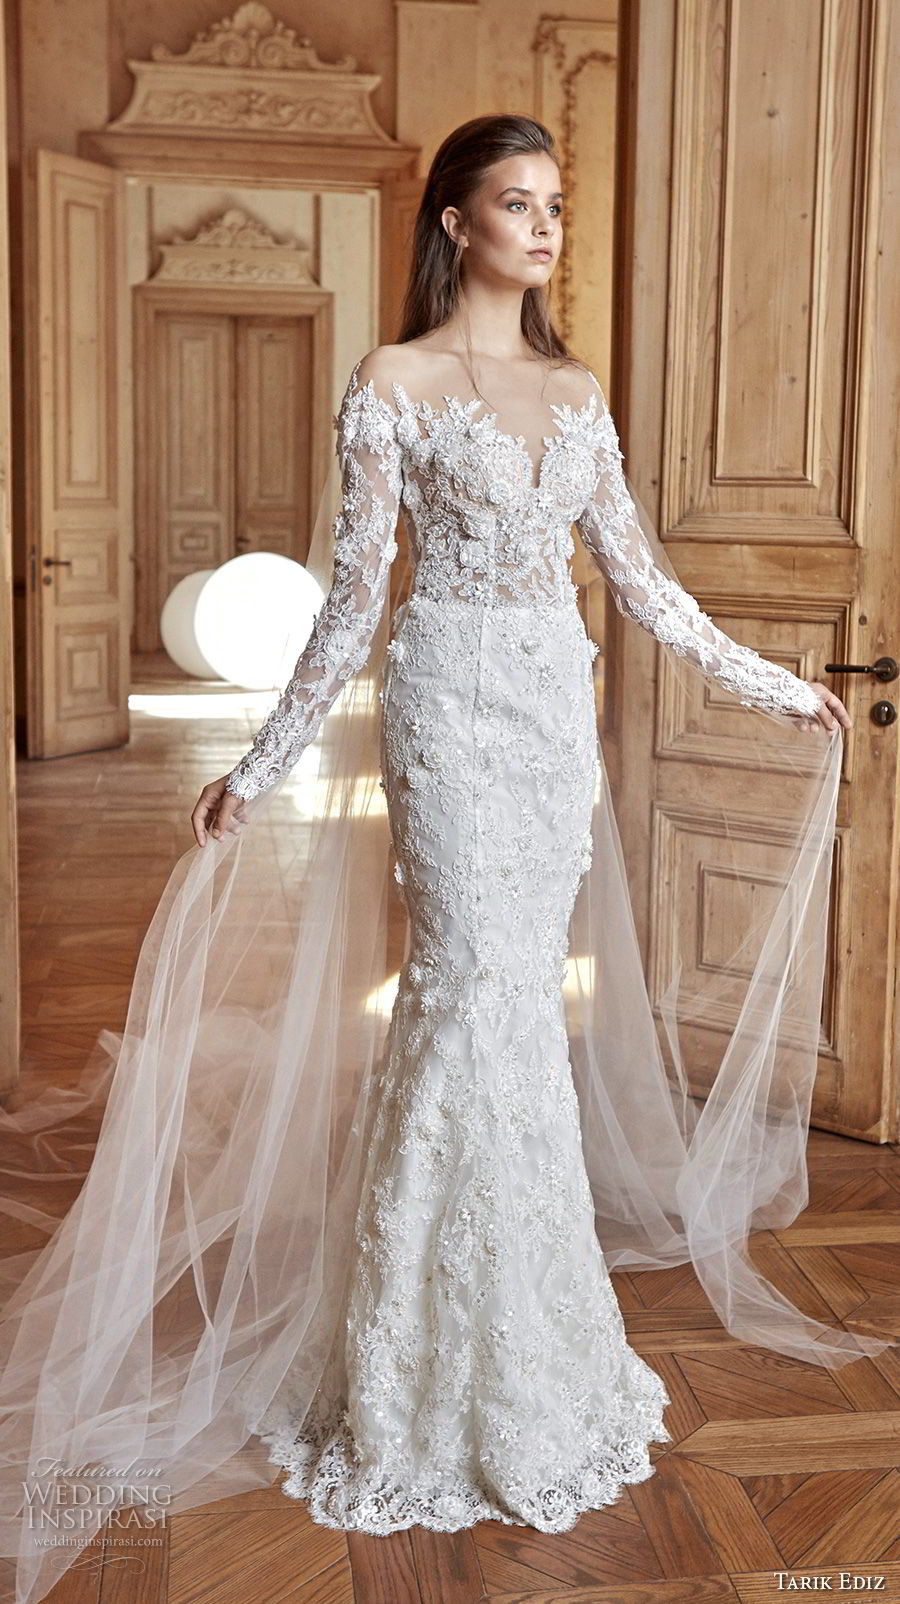 tarik ediz 2017 bridal long sleeves sweetheart neckline full embellishment elegant fit and flare wedding dress chapel train sweep train (26) mv